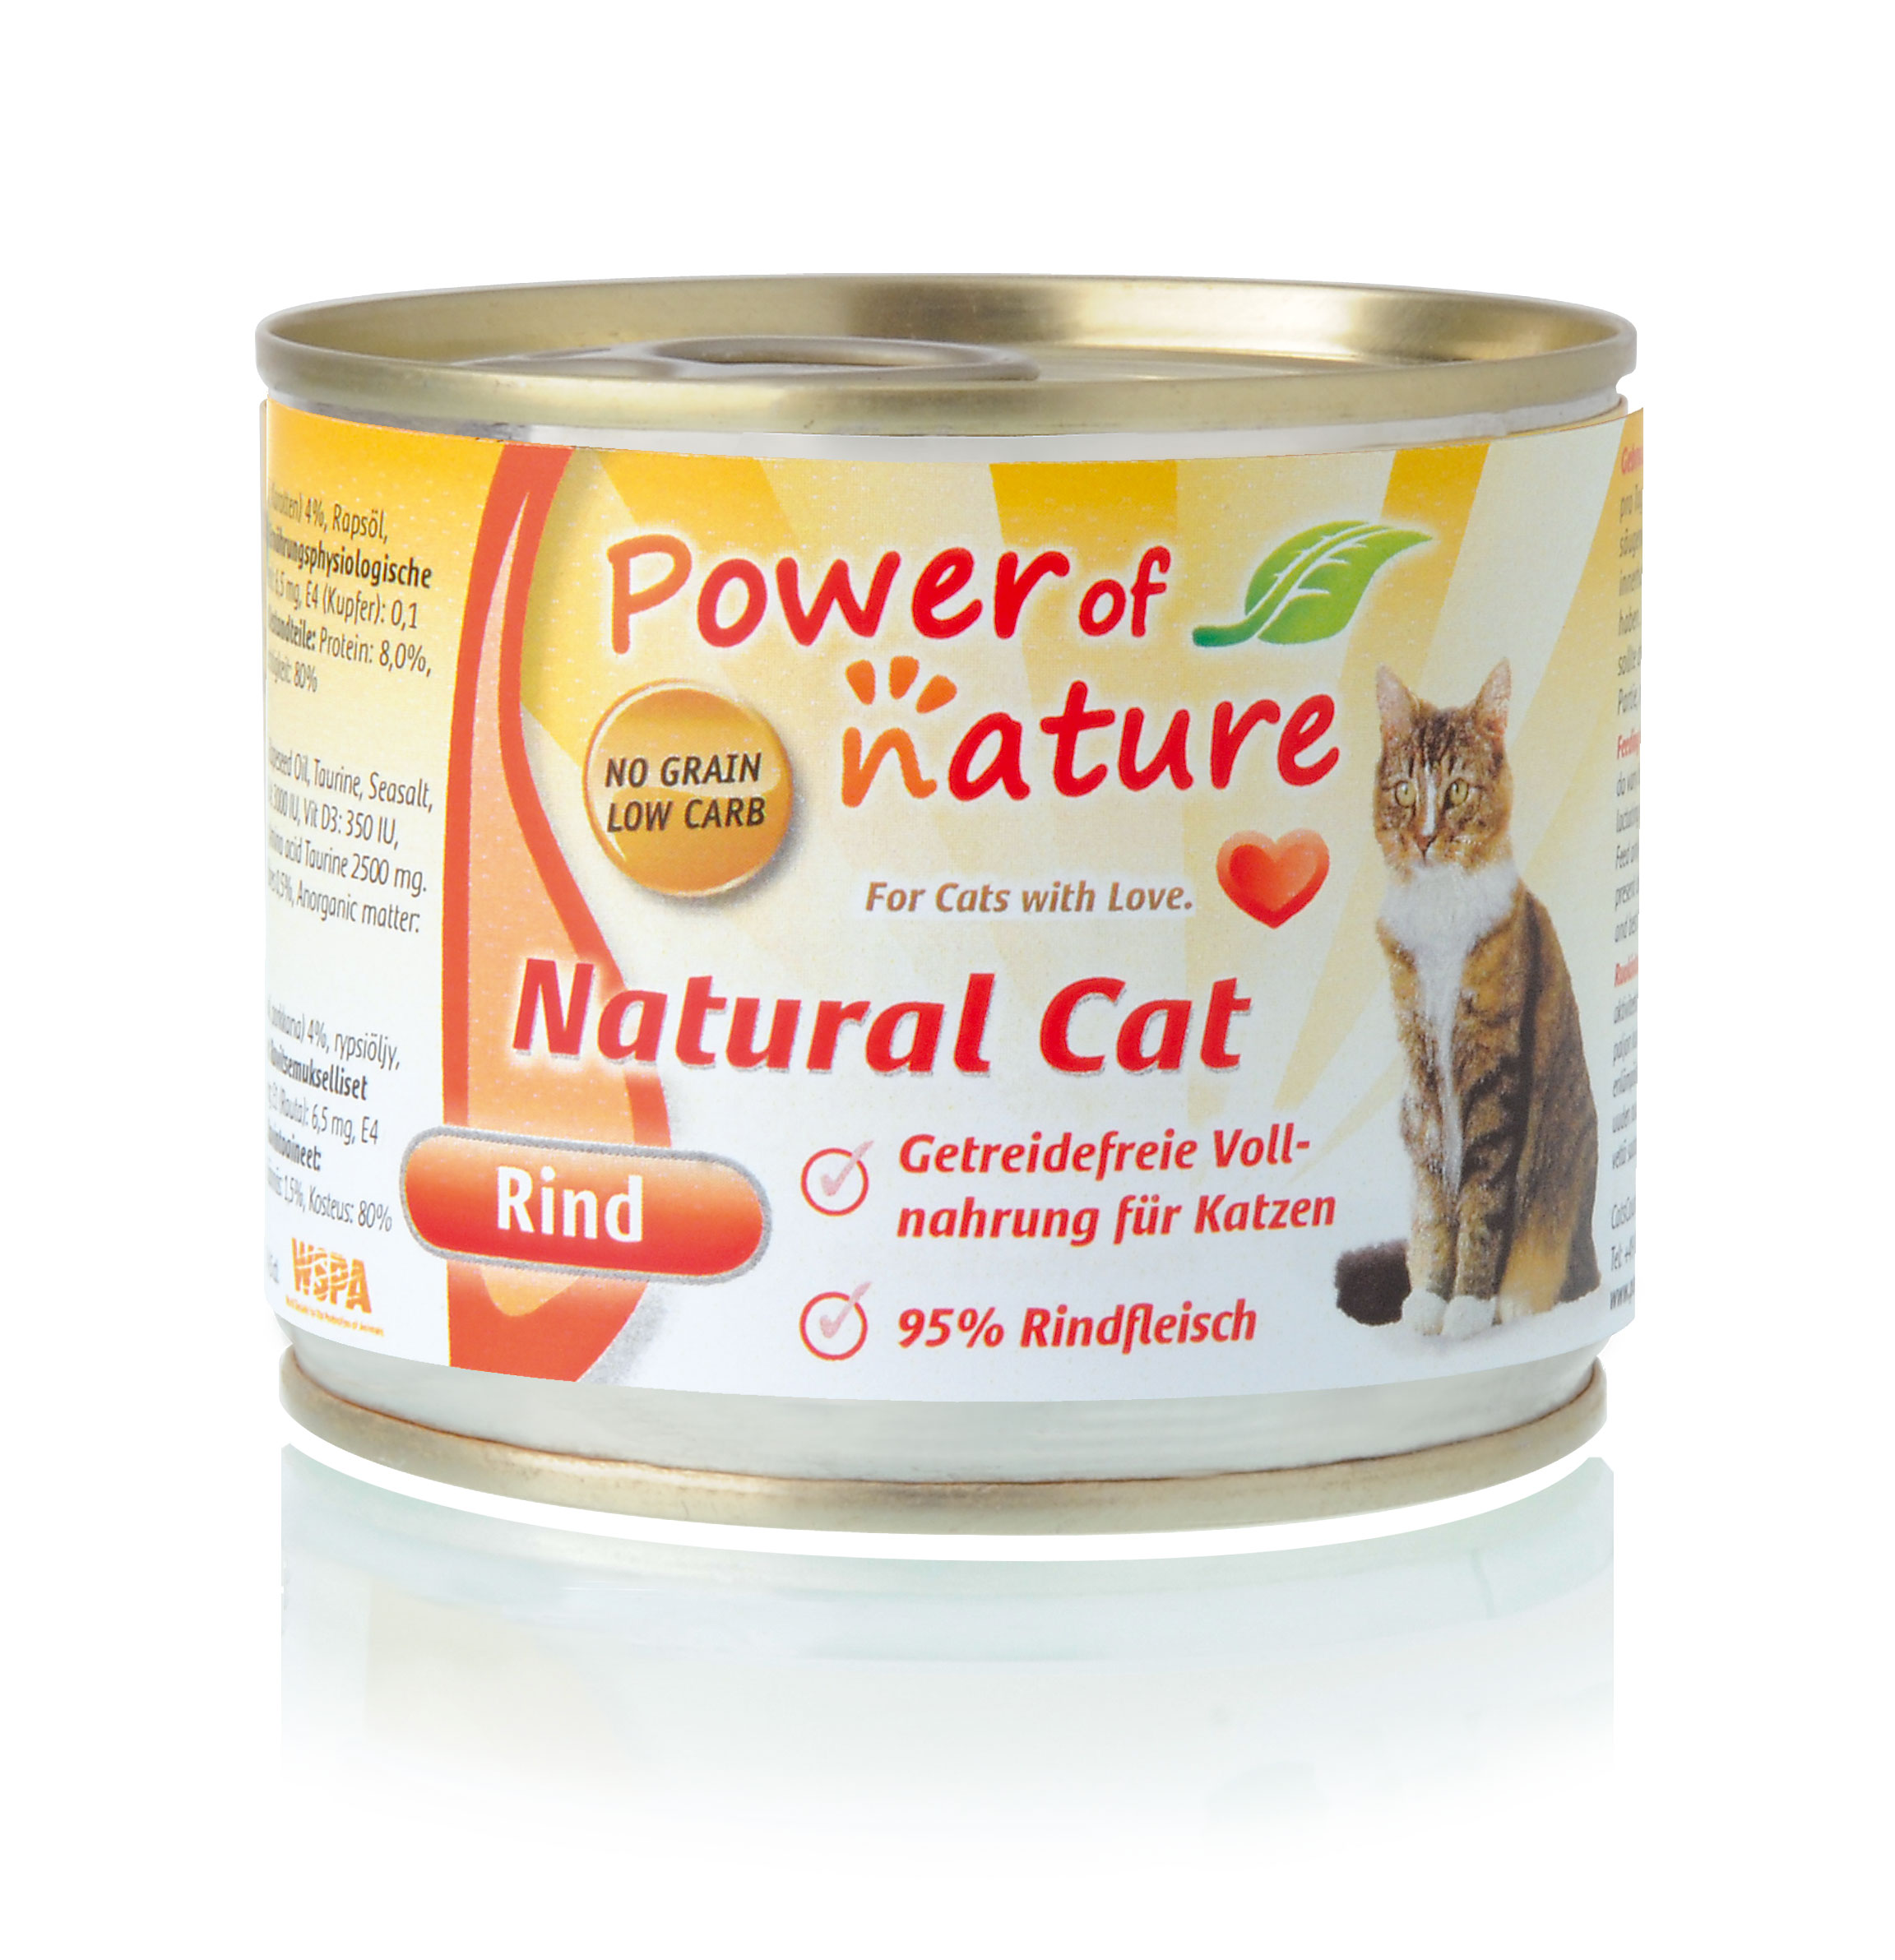 Power of Nature Natural Cat Dose Rind 24 x200g